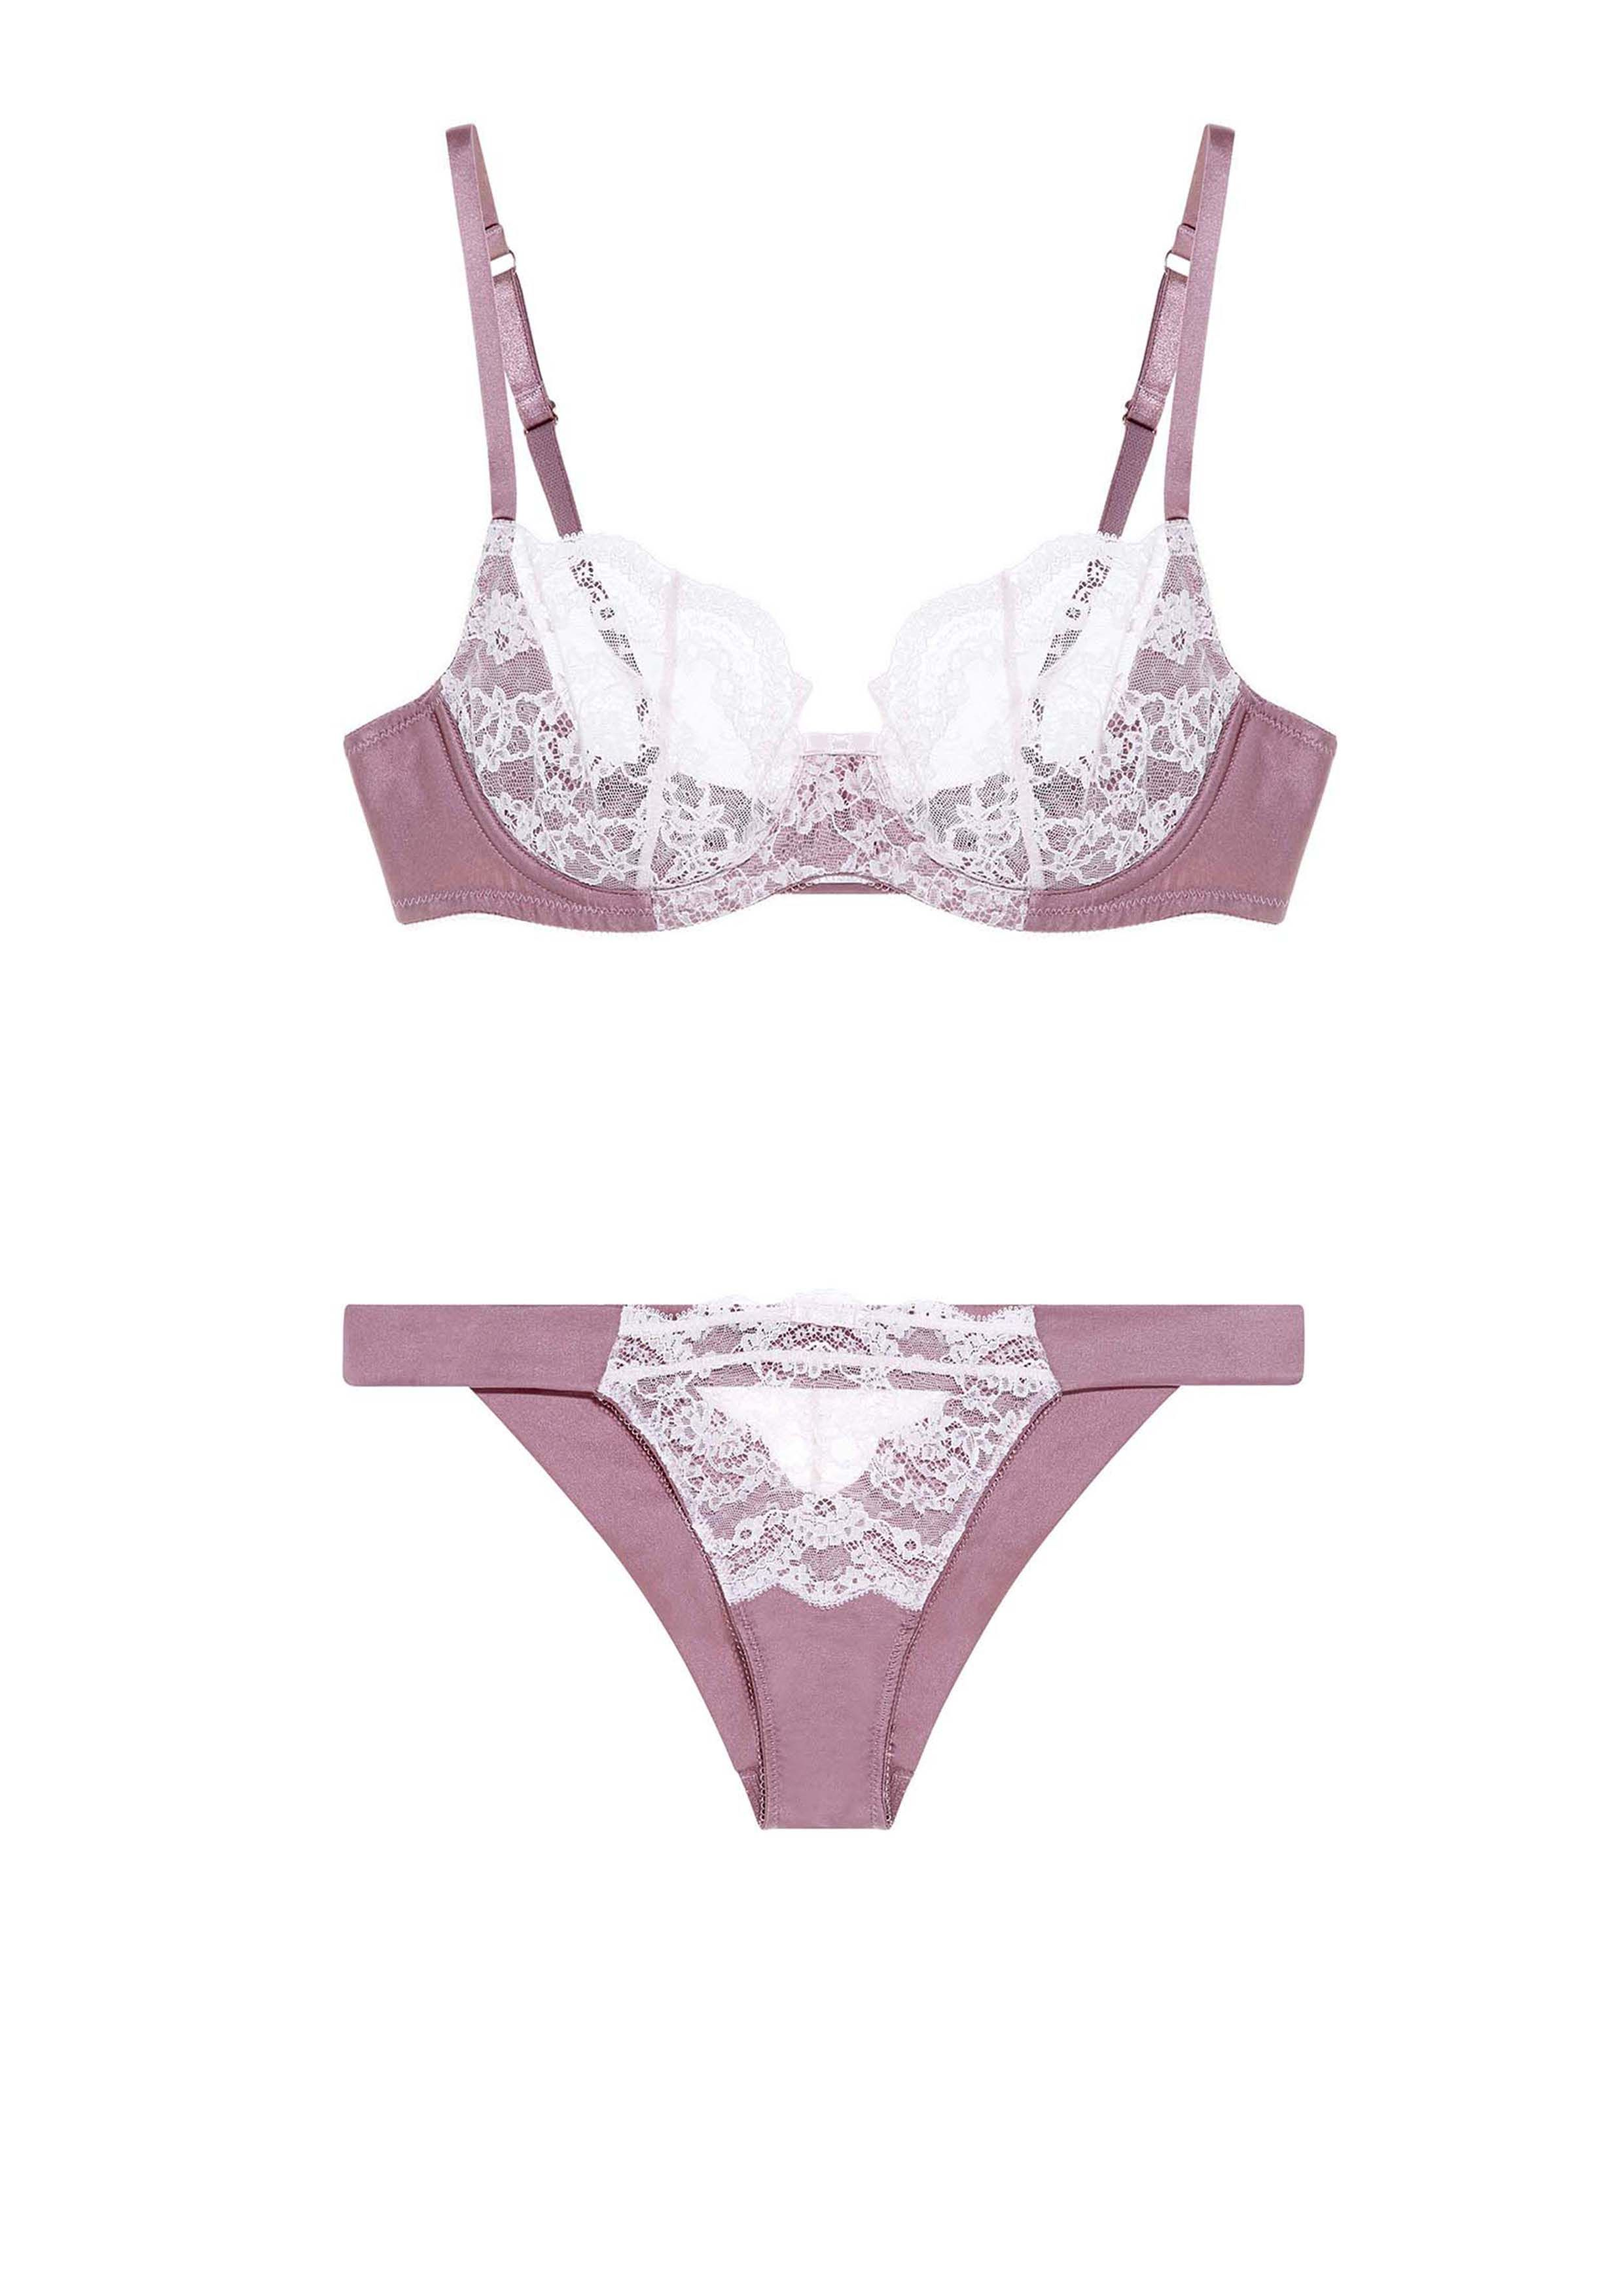 d85a2f21ff331 The best sexy lingerie sets for Valentine's Night